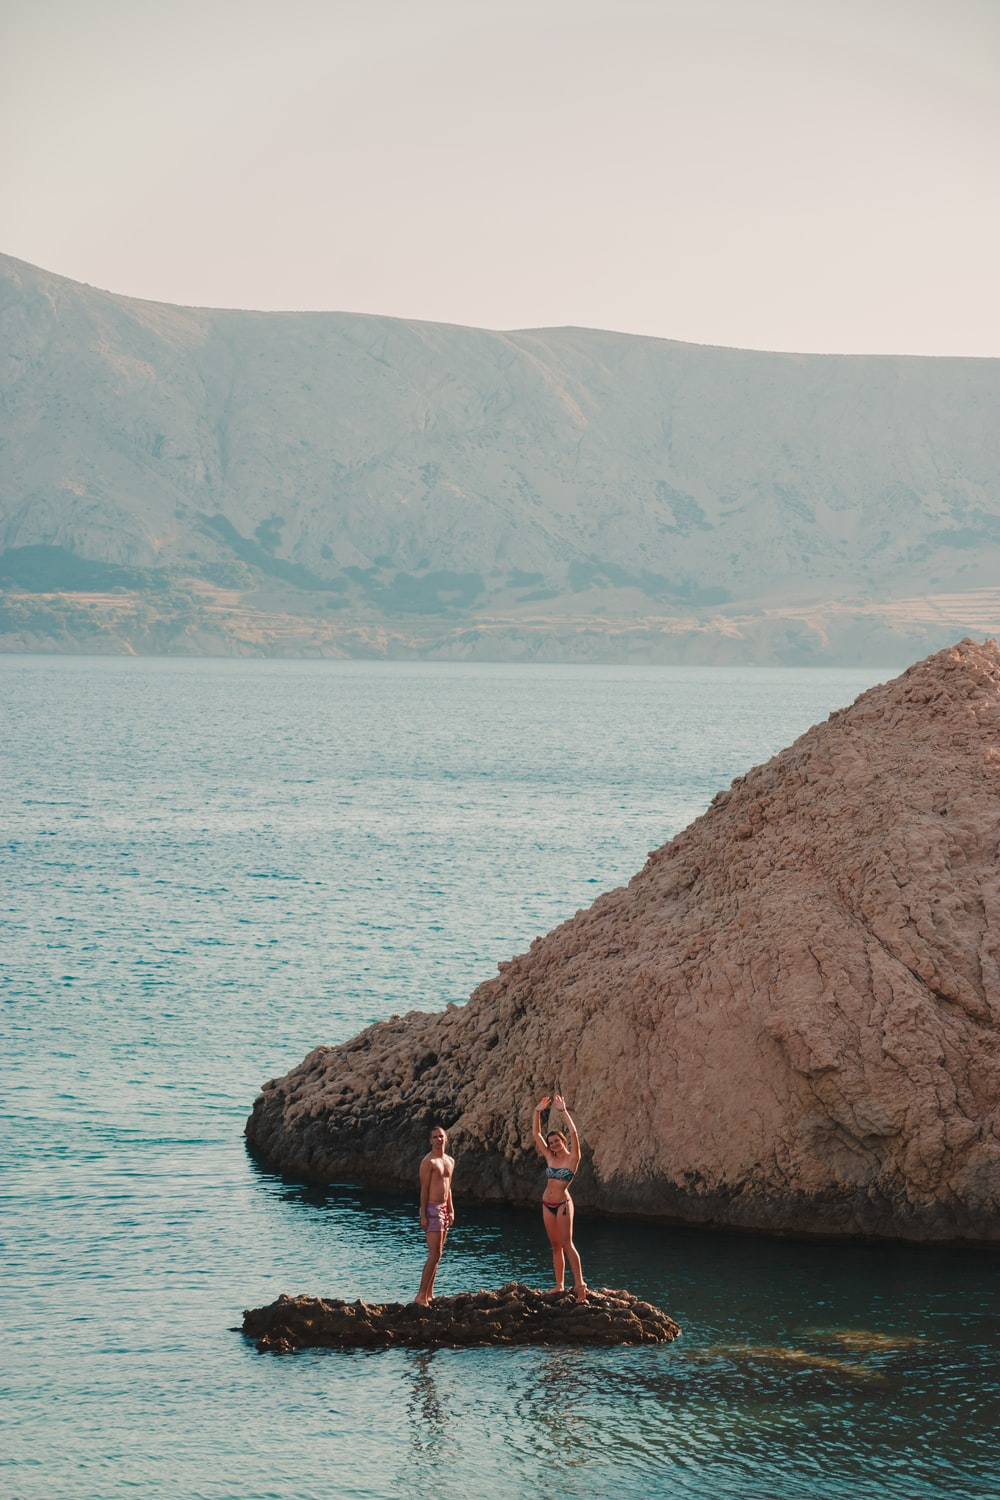 2 women standing on rock near body of water during daytime